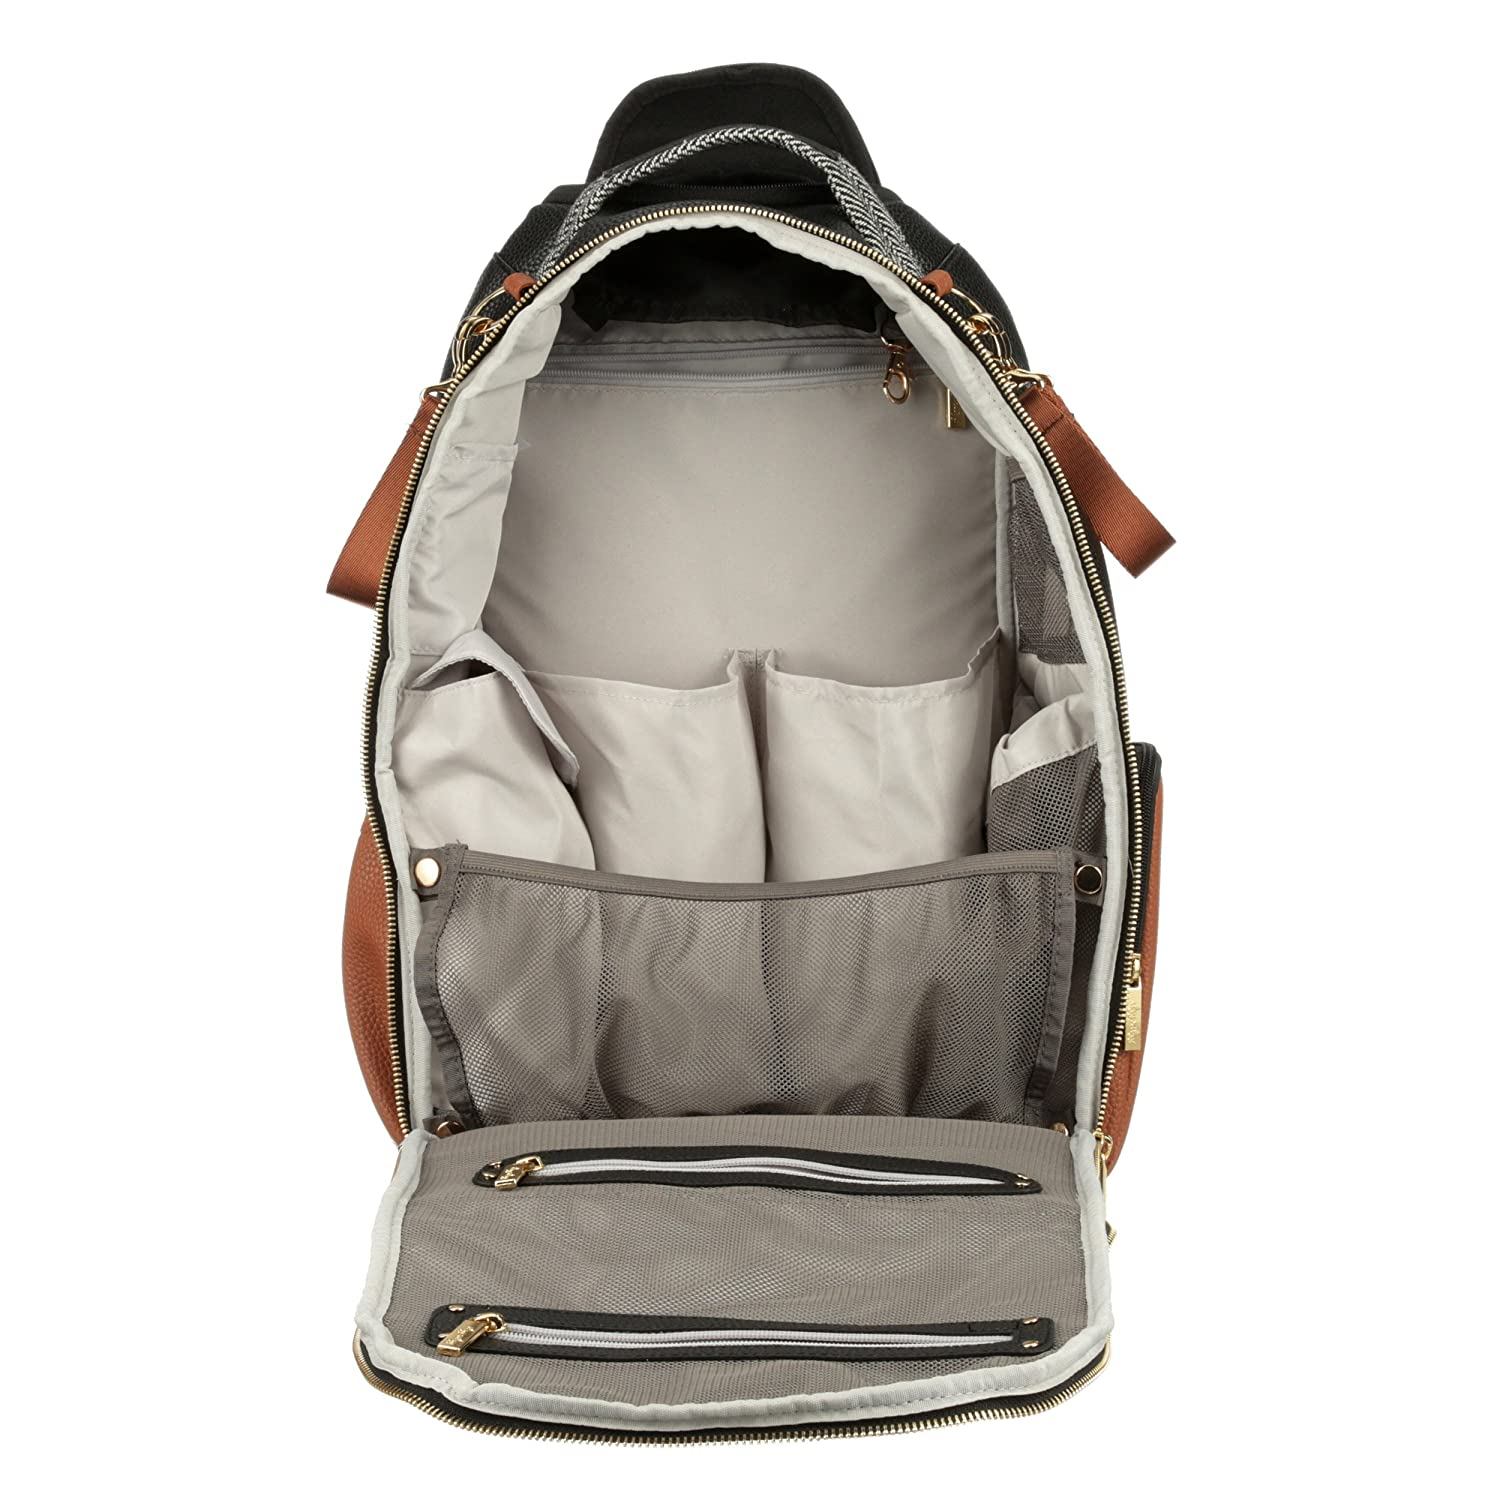 Itzy Ritzy Diaper Bag Backpack Large Capacity Boss Backpack Diaper Bag Featuring Bottle Pockets Changing Pad Stroller Clips and Comfortable Backpack Straps Taupe Herringbone